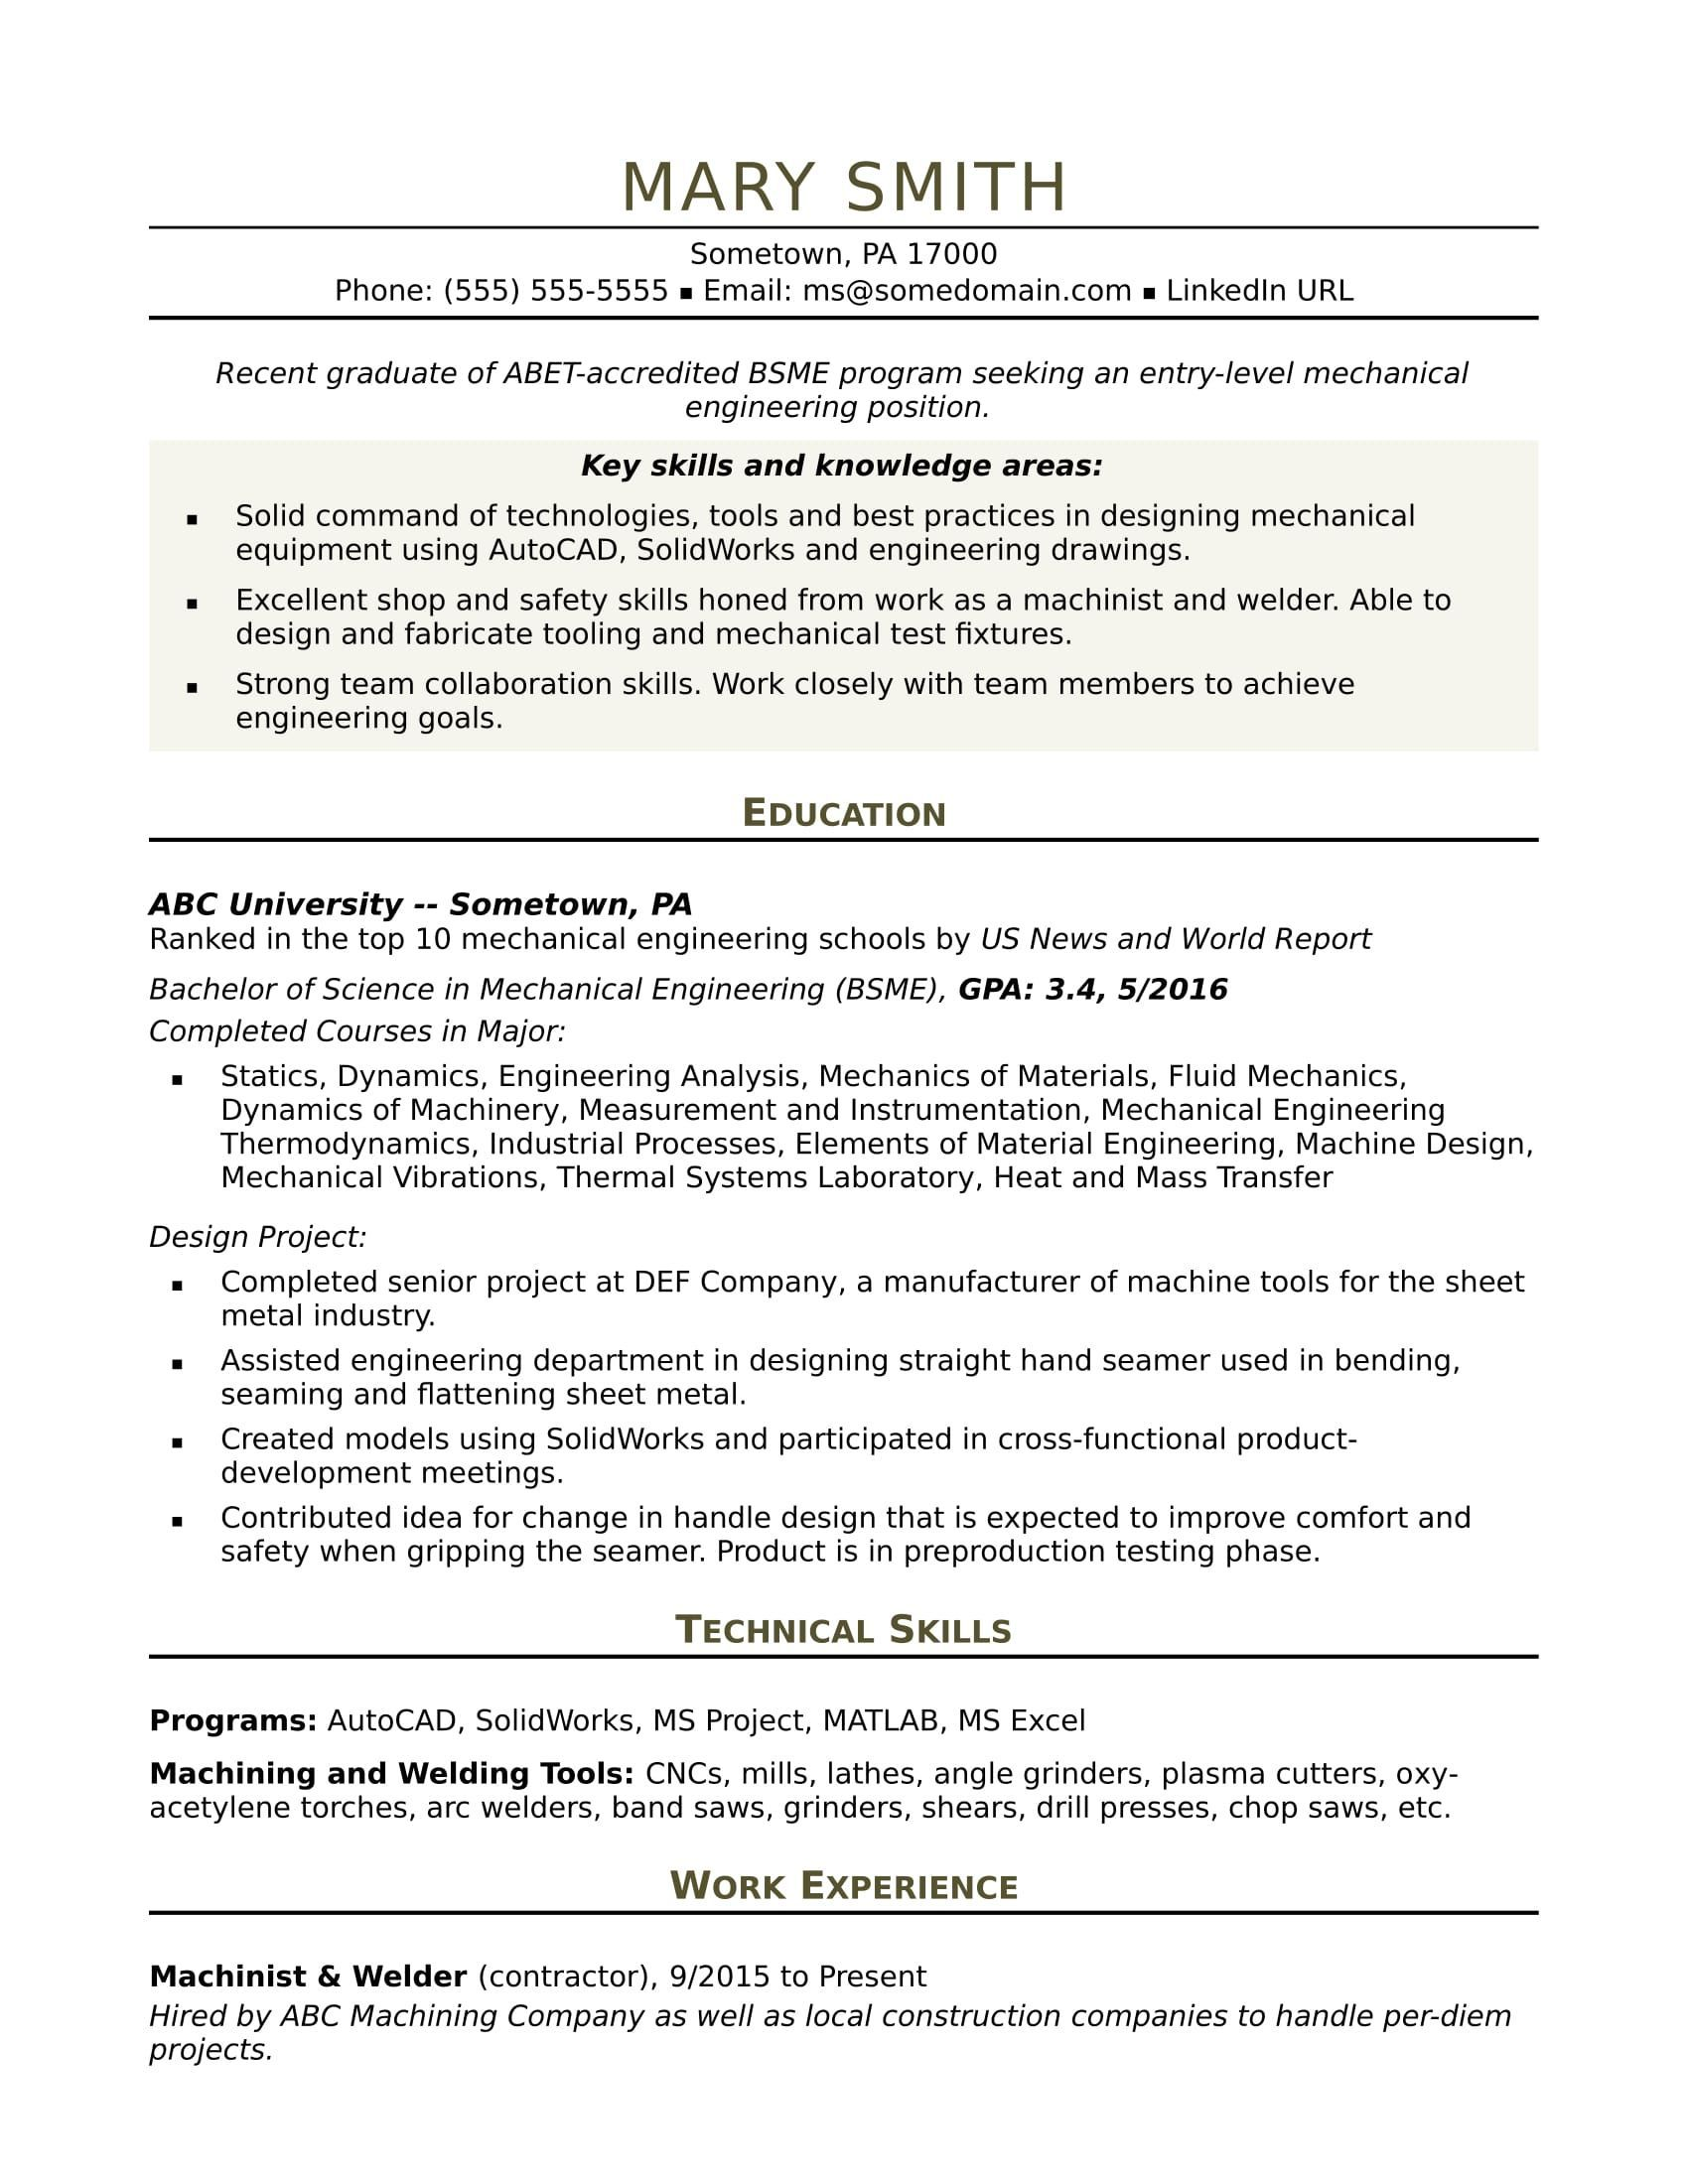 Mechanical Engineering Sample Resume Extraordinary Sample Resume For An Entrylevel Mechanical Engineer .